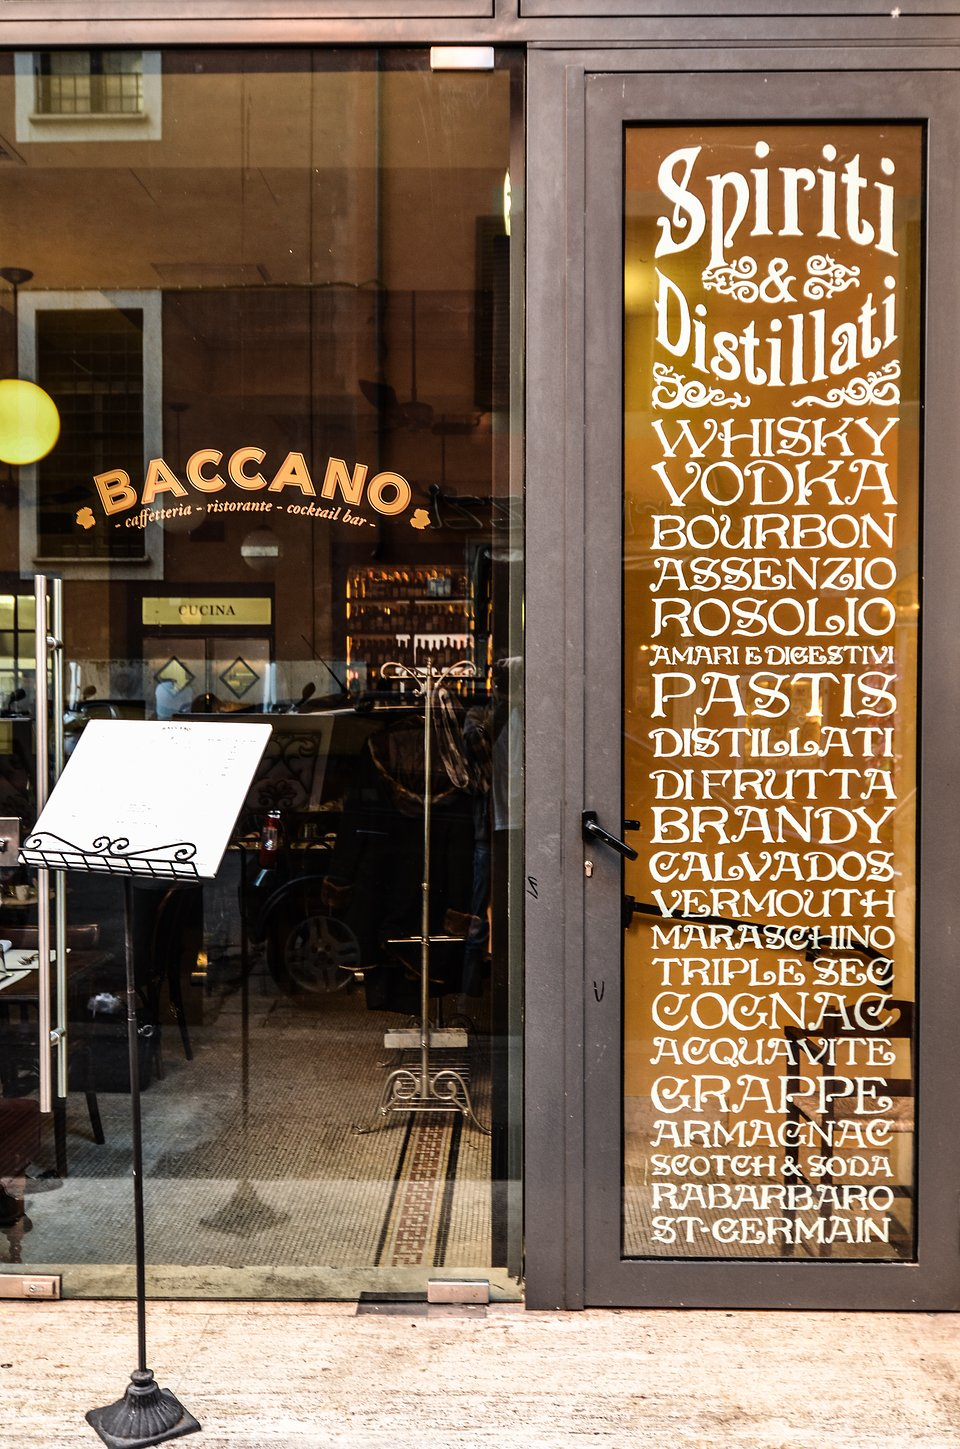 Baccano_Roma by RPM PROGET (2).jpg